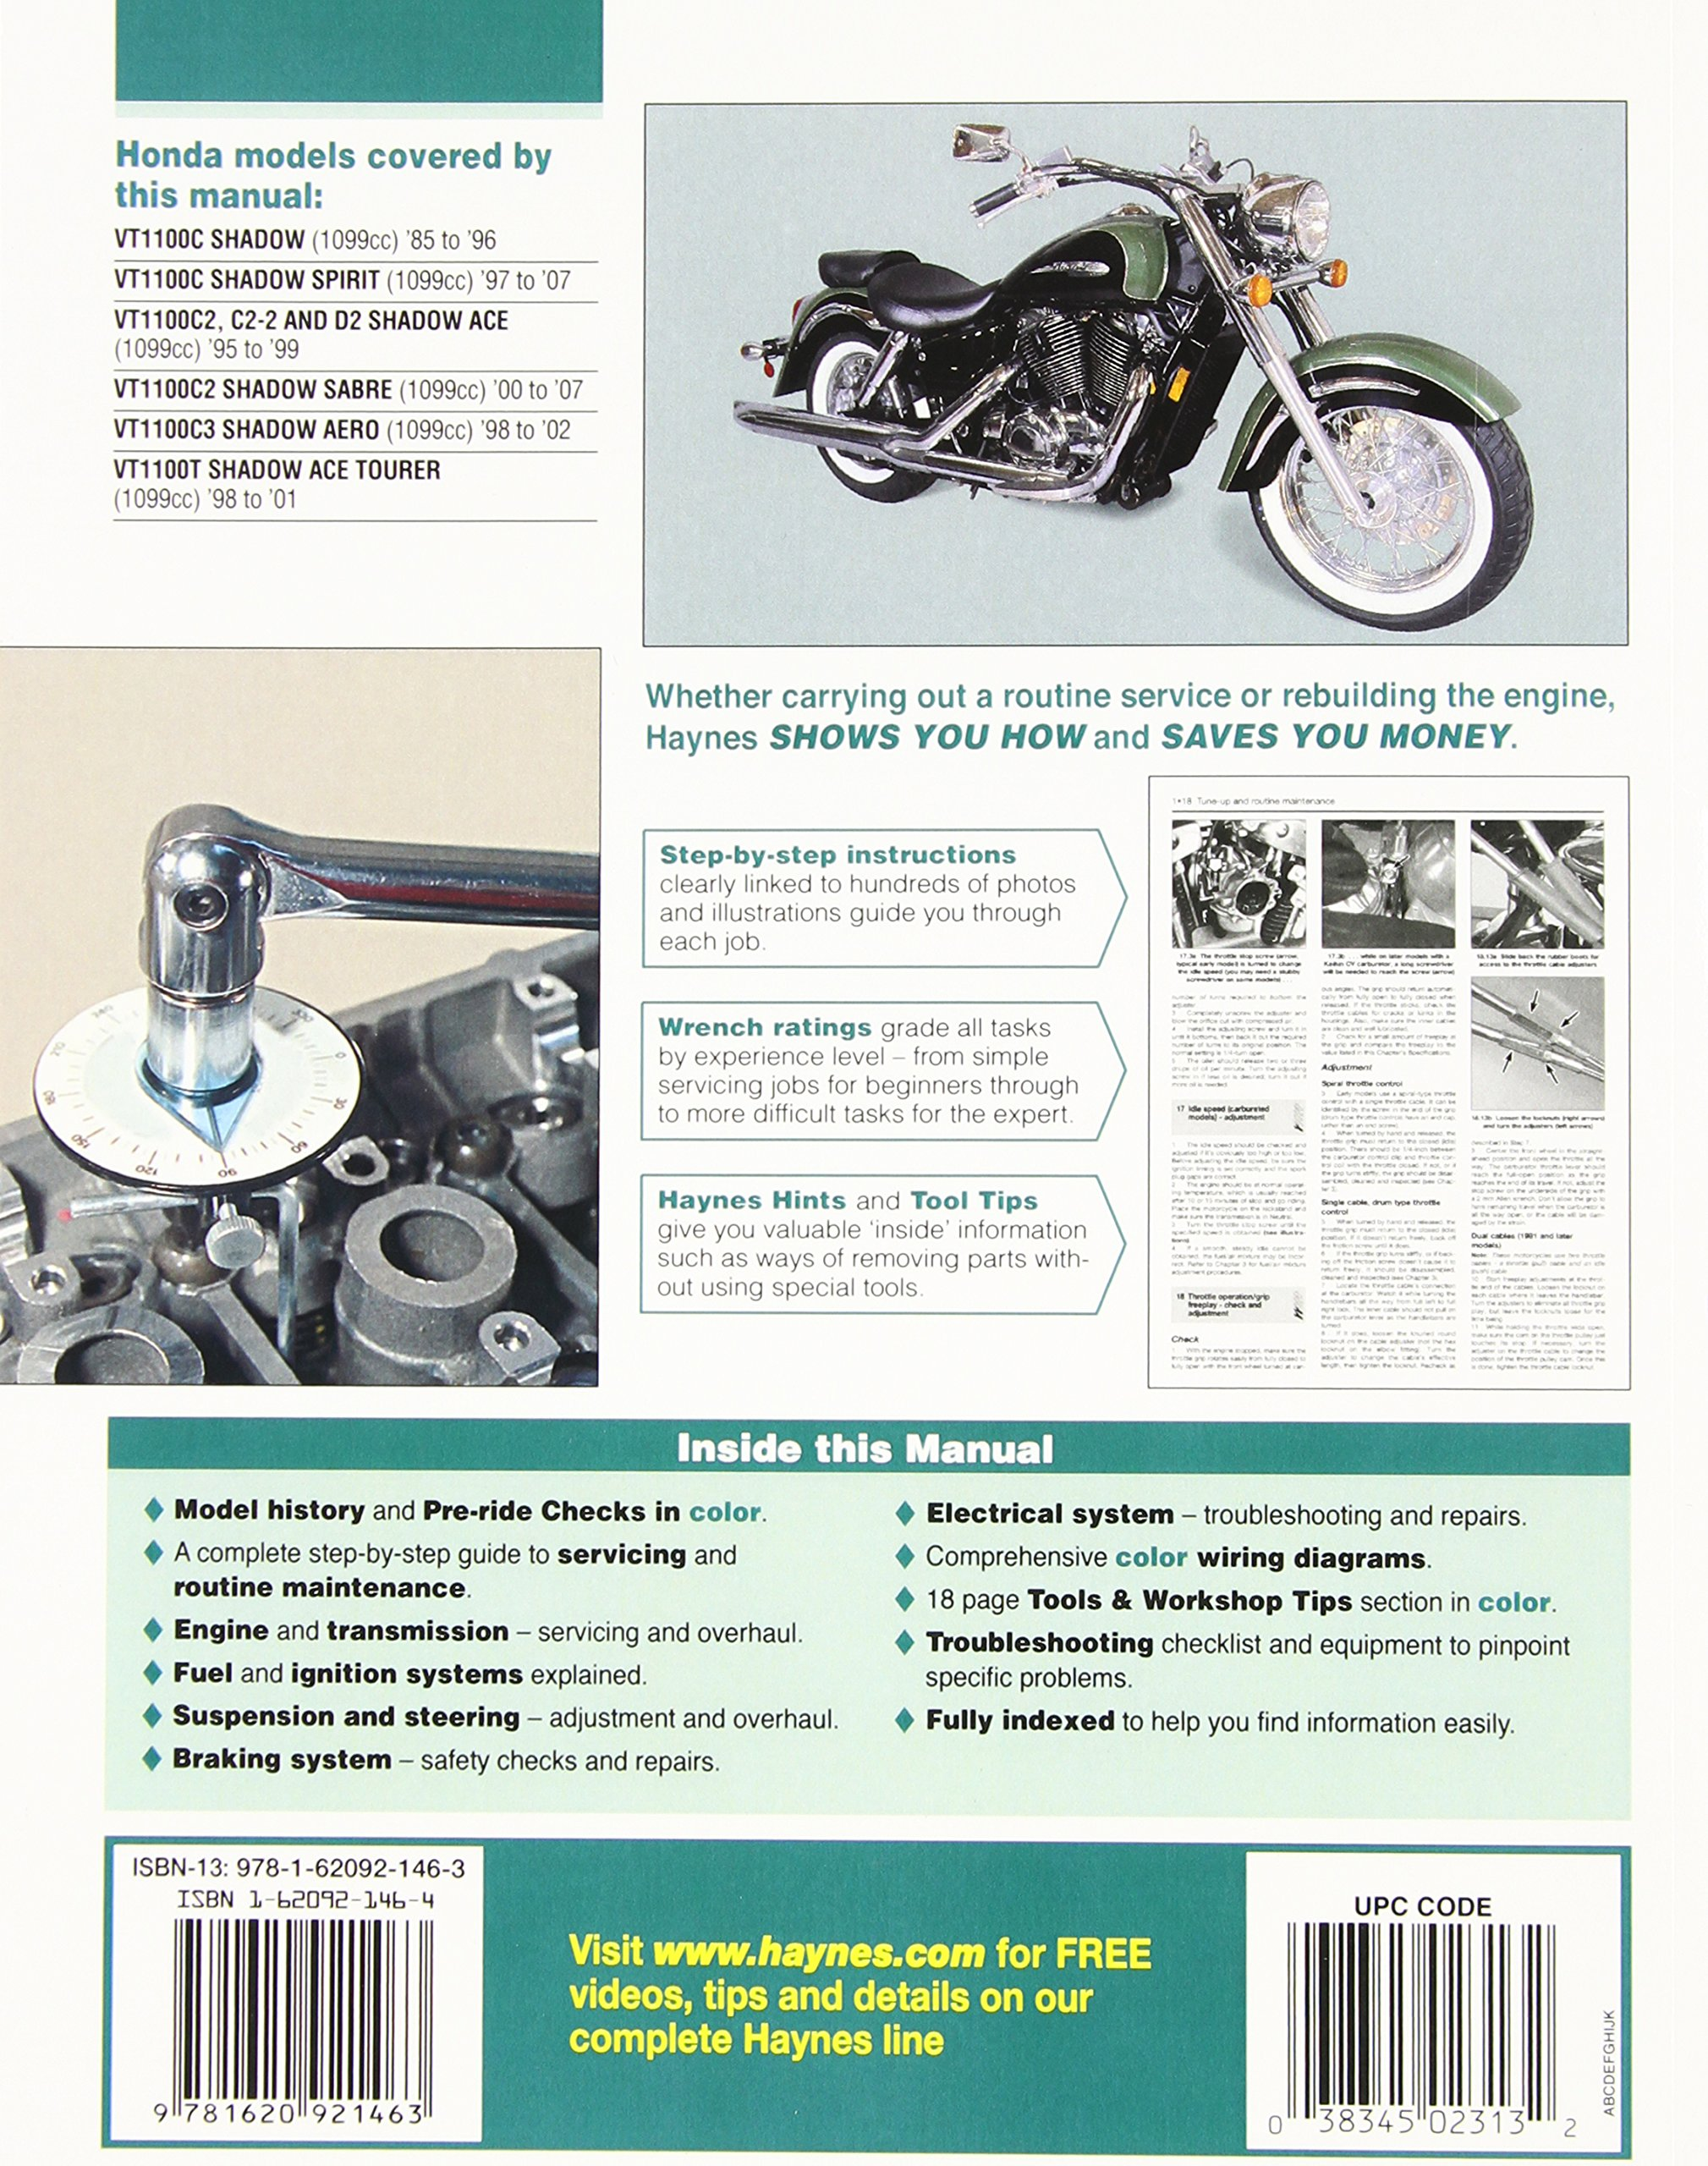 1996 Honda Shadow Vt 1100 Wiring Diagram Manual E Books 2007 Aero Library1996